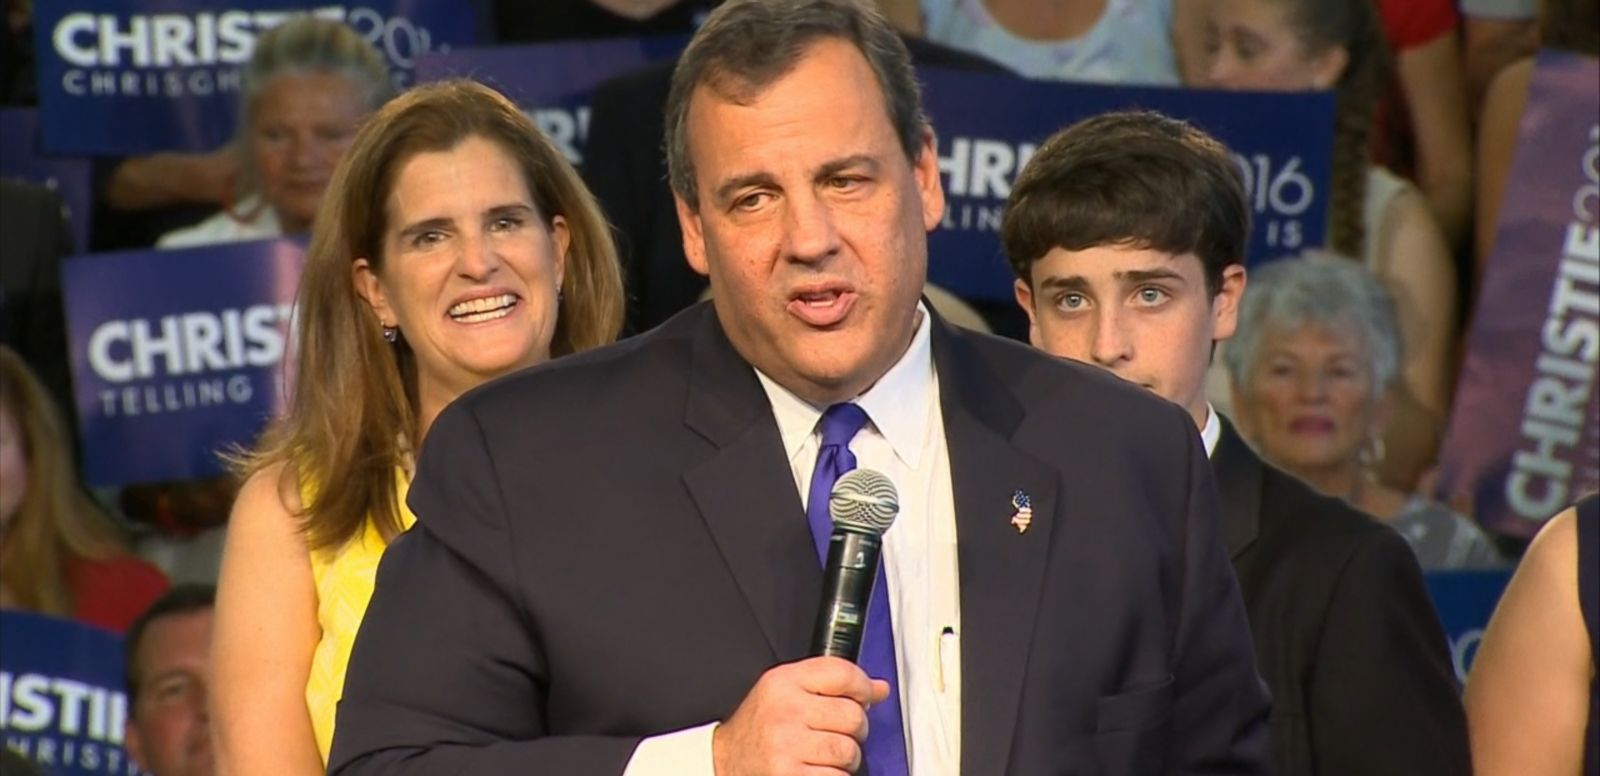 VIDEO: The New Jersey governor is the 14th Republican to enter the 2016 race for the White House.